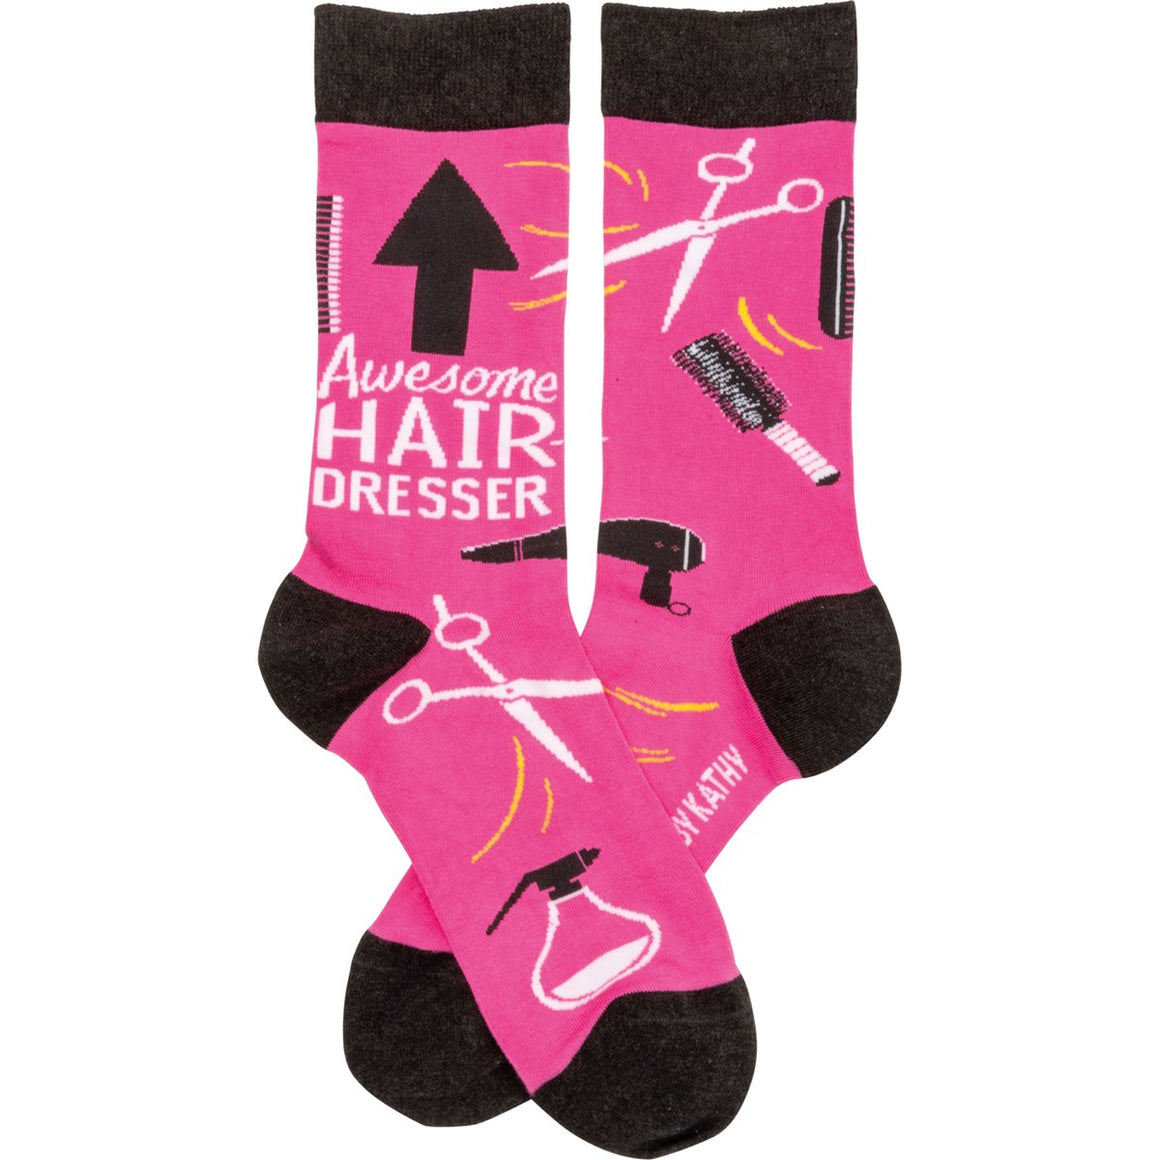 Awesome Hairdresser Socks